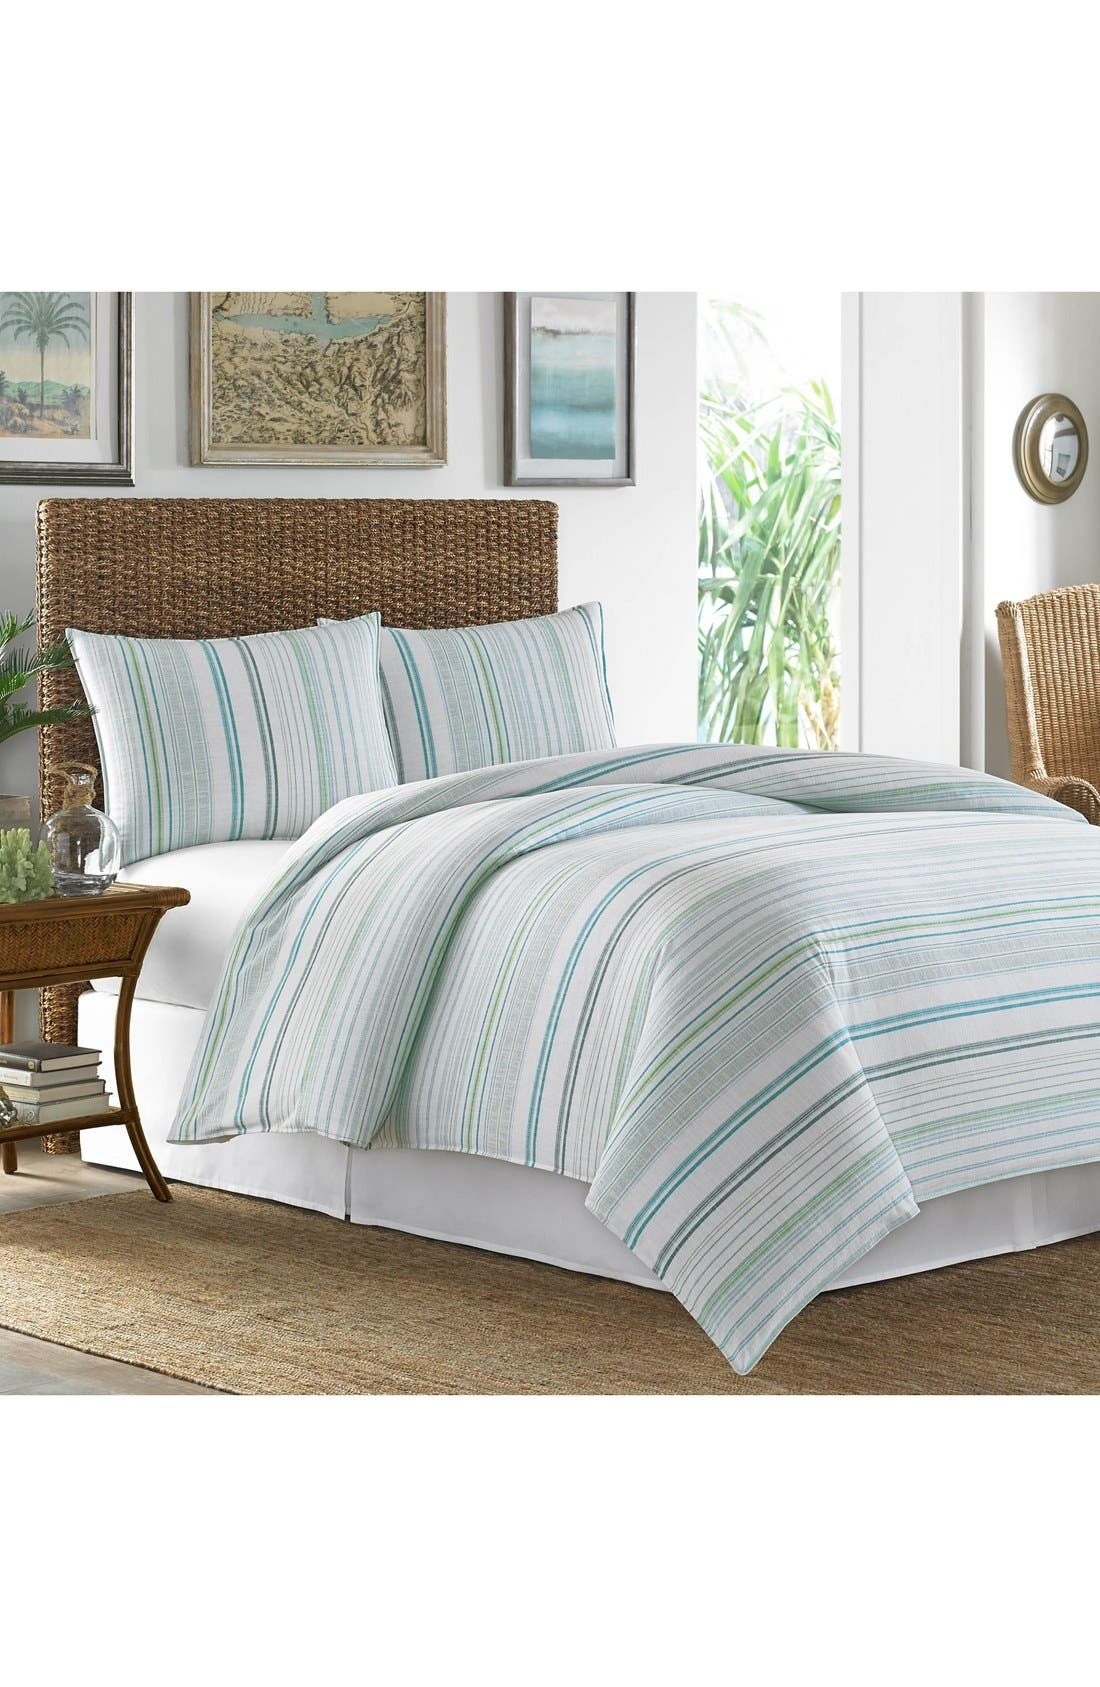 Main Image - Tommy Bahama La Scala Breezer Comforter, Sham & Bed Skirt Set